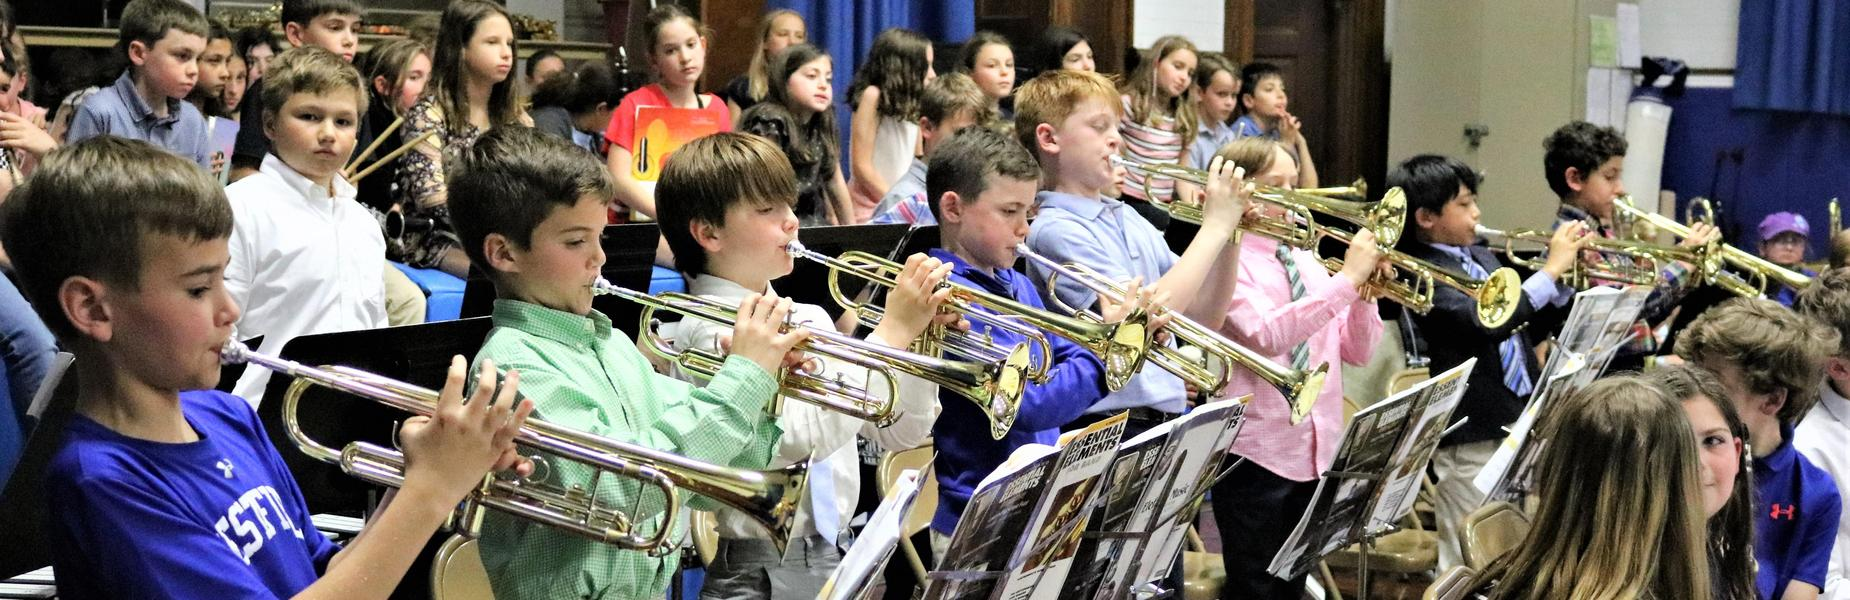 Photo of 4th grade trumpeteers performing in Wilson School Spring Band Concert.